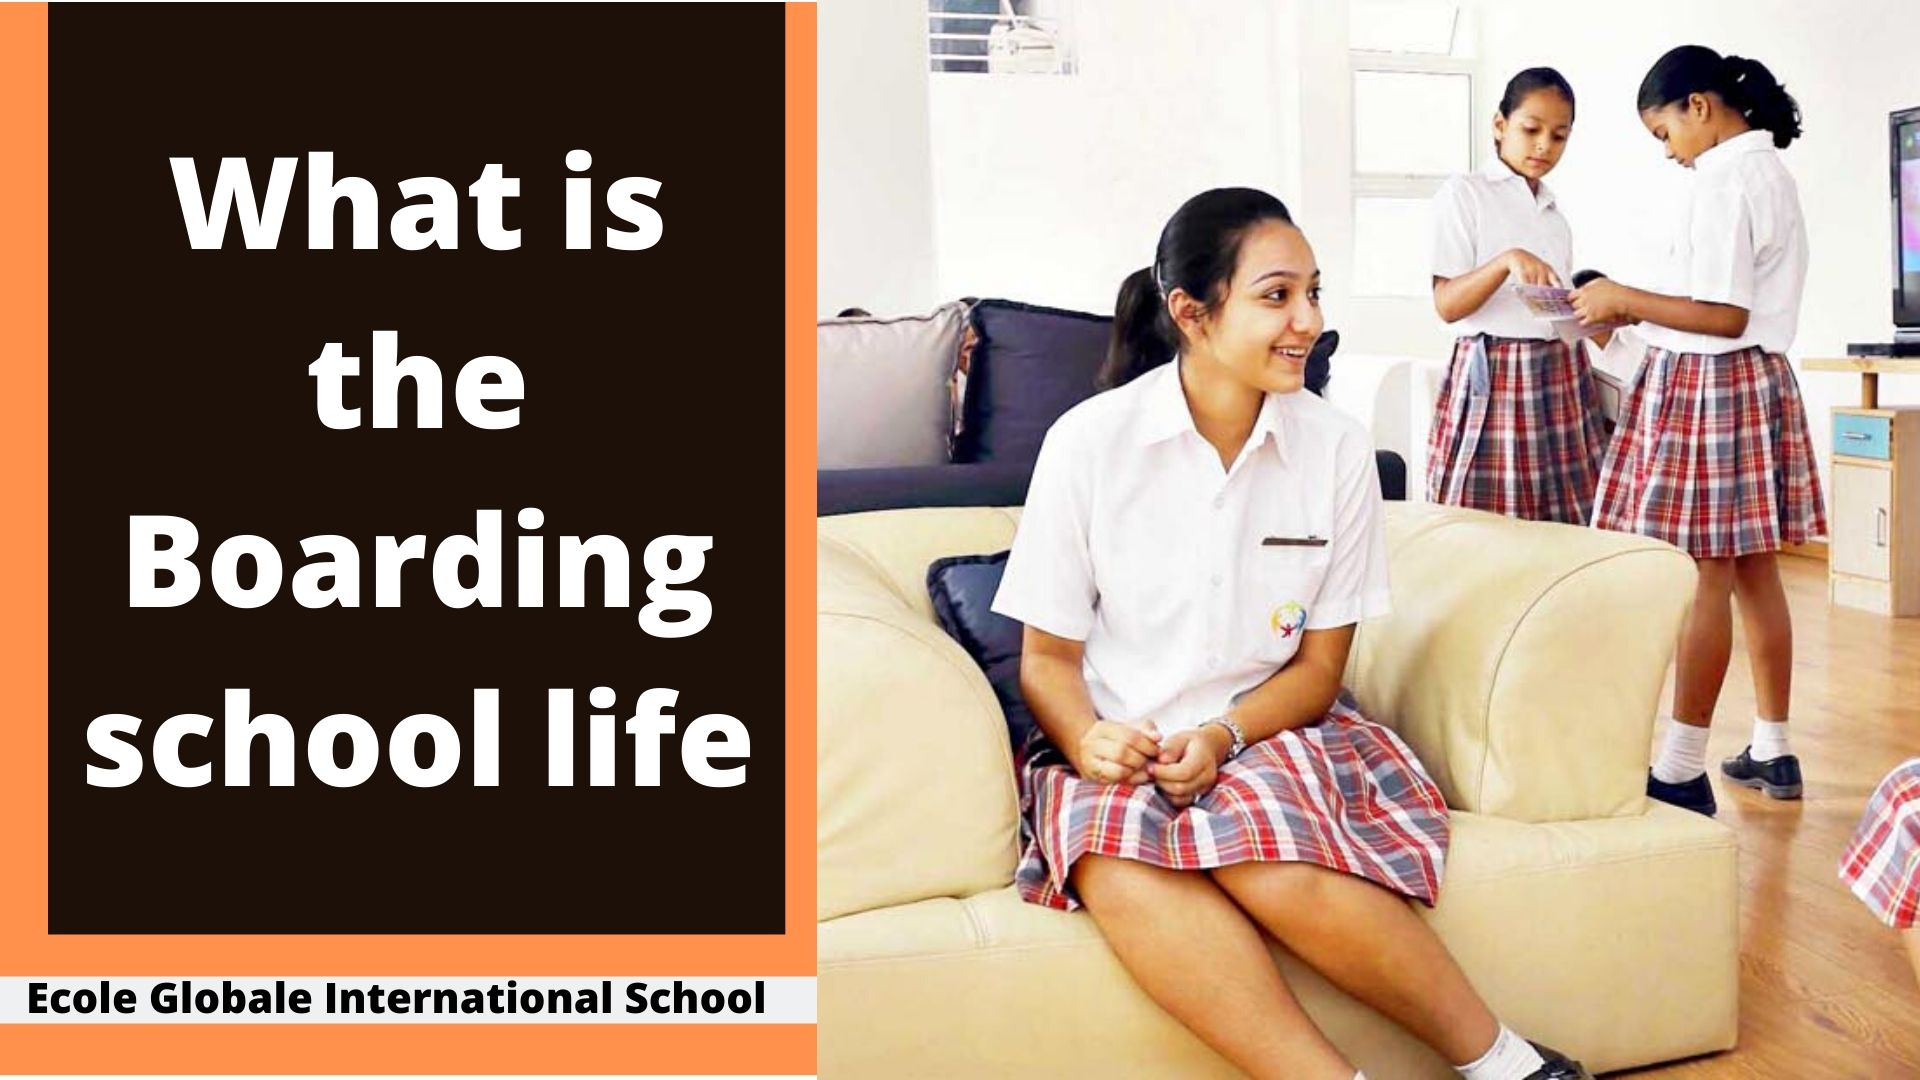 What is the Boarding school life